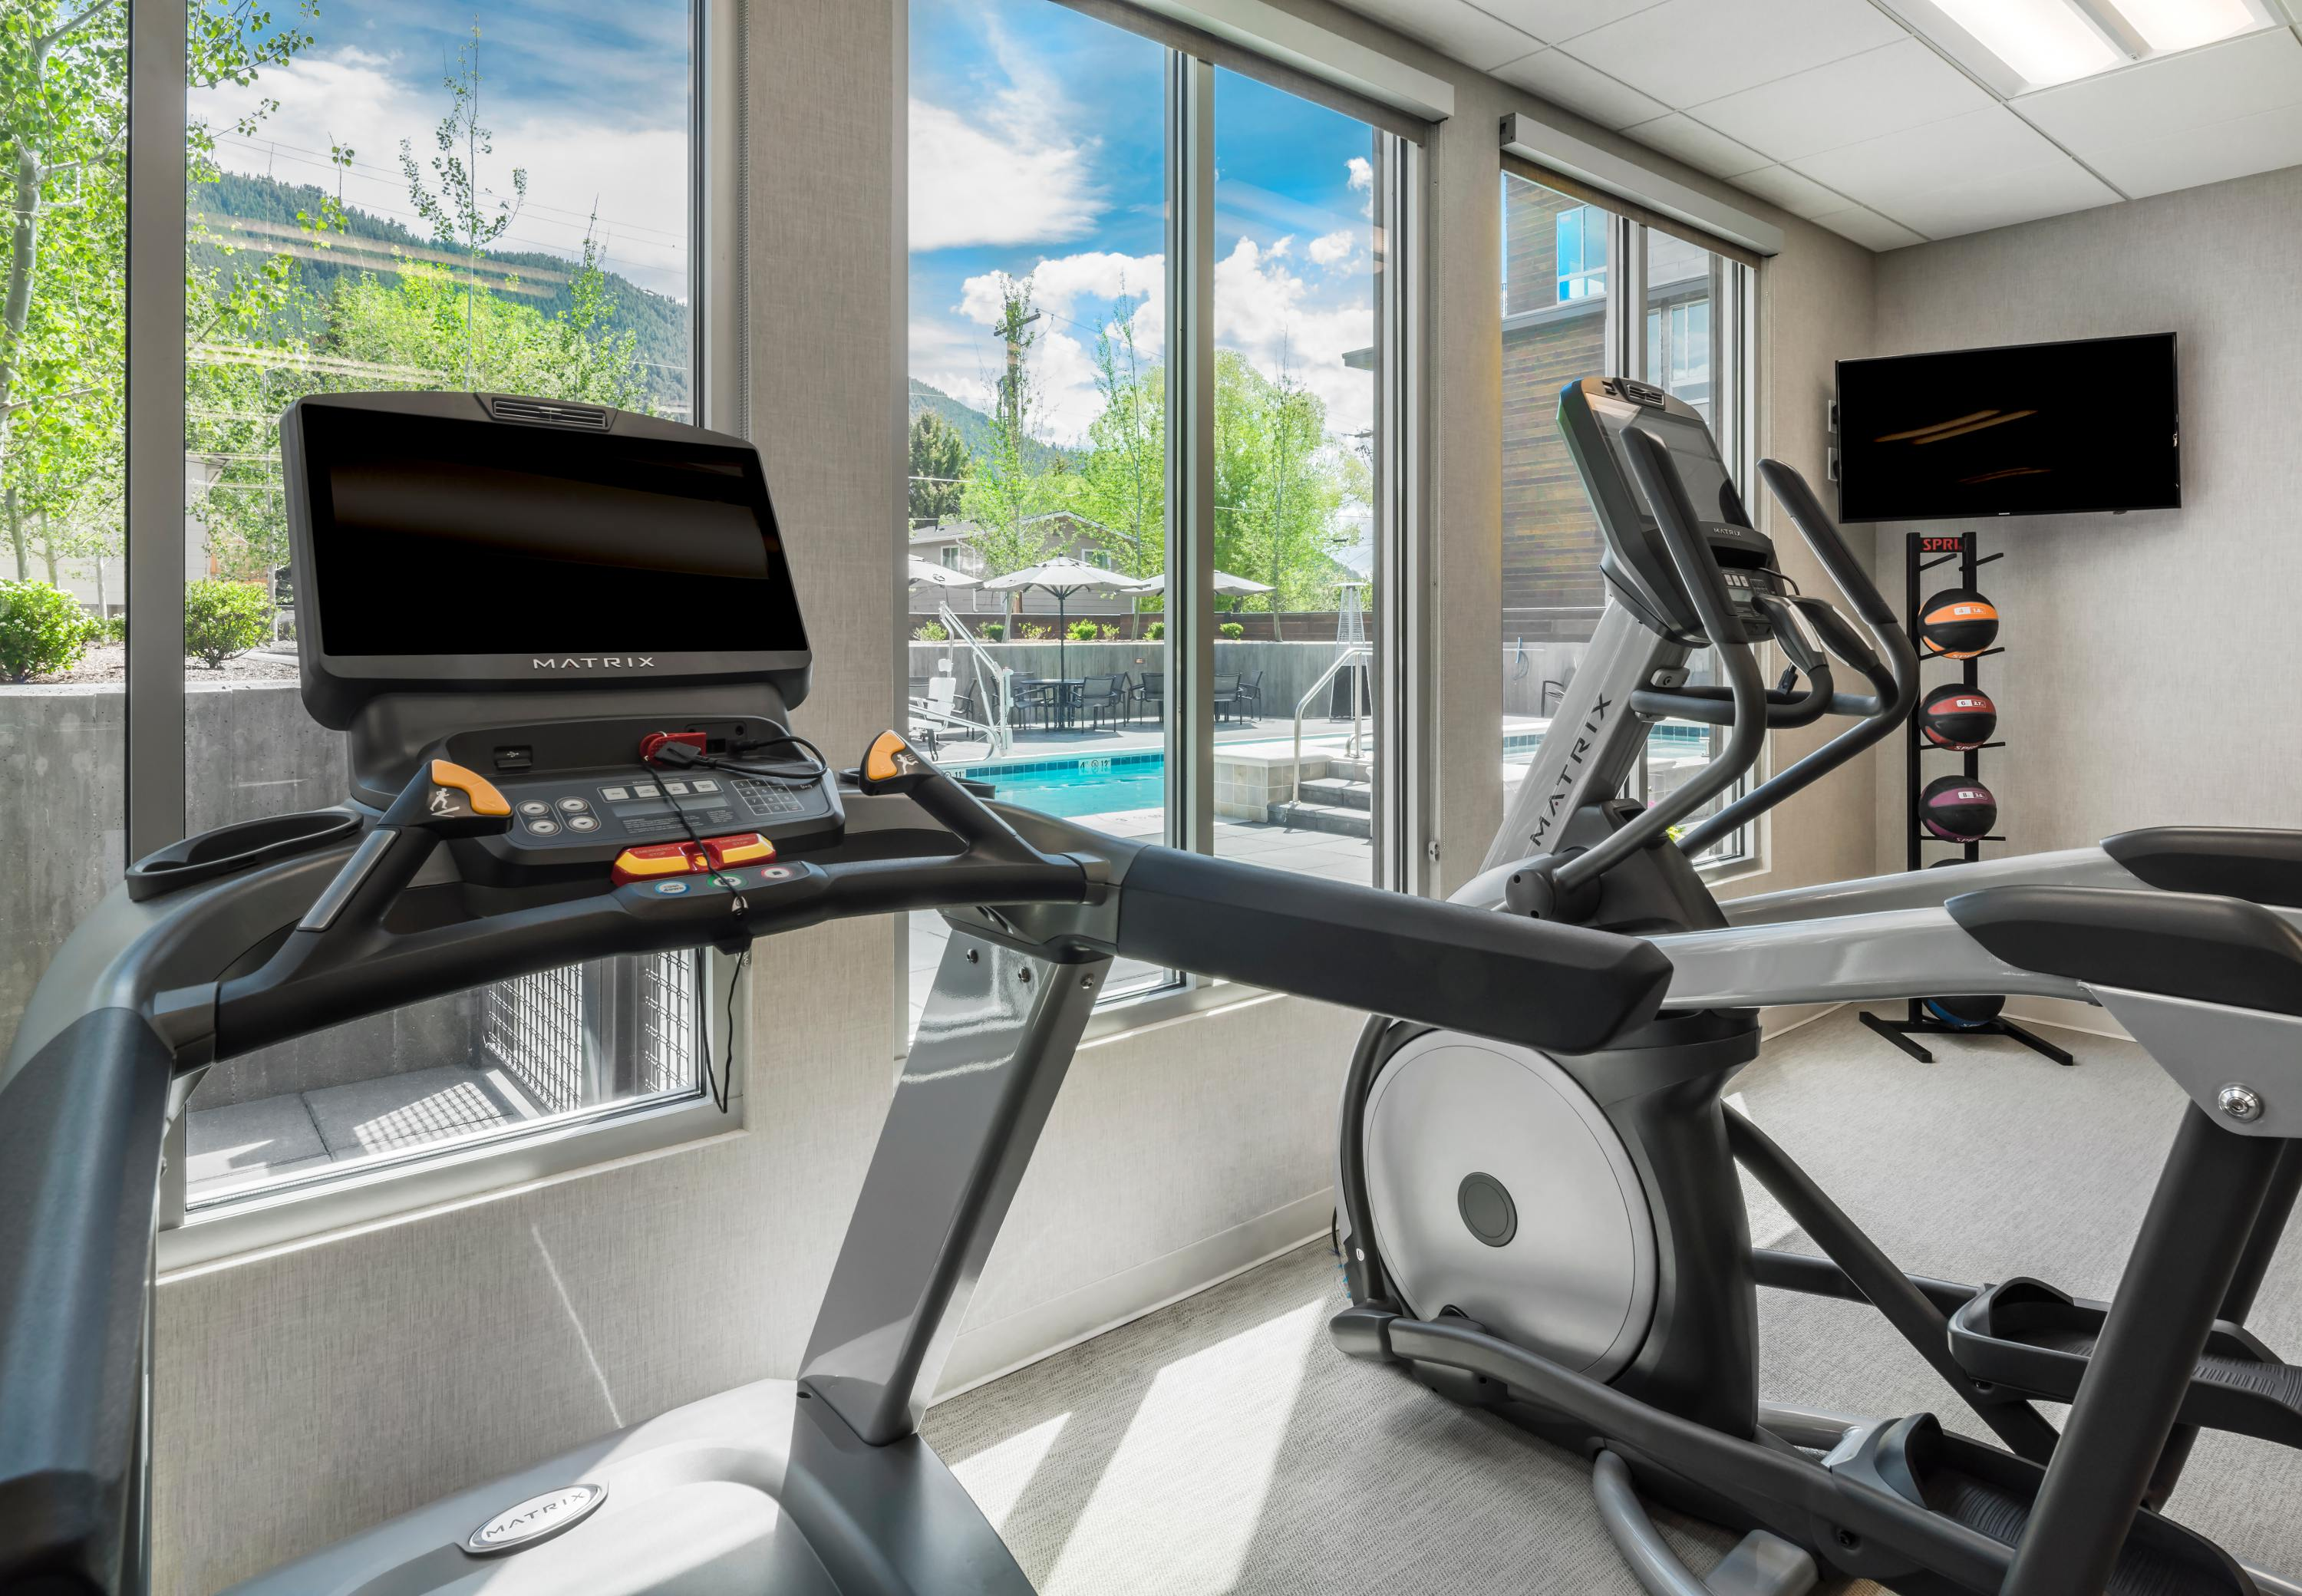 SpringHill Suites by Marriott Jackson Hole image 12